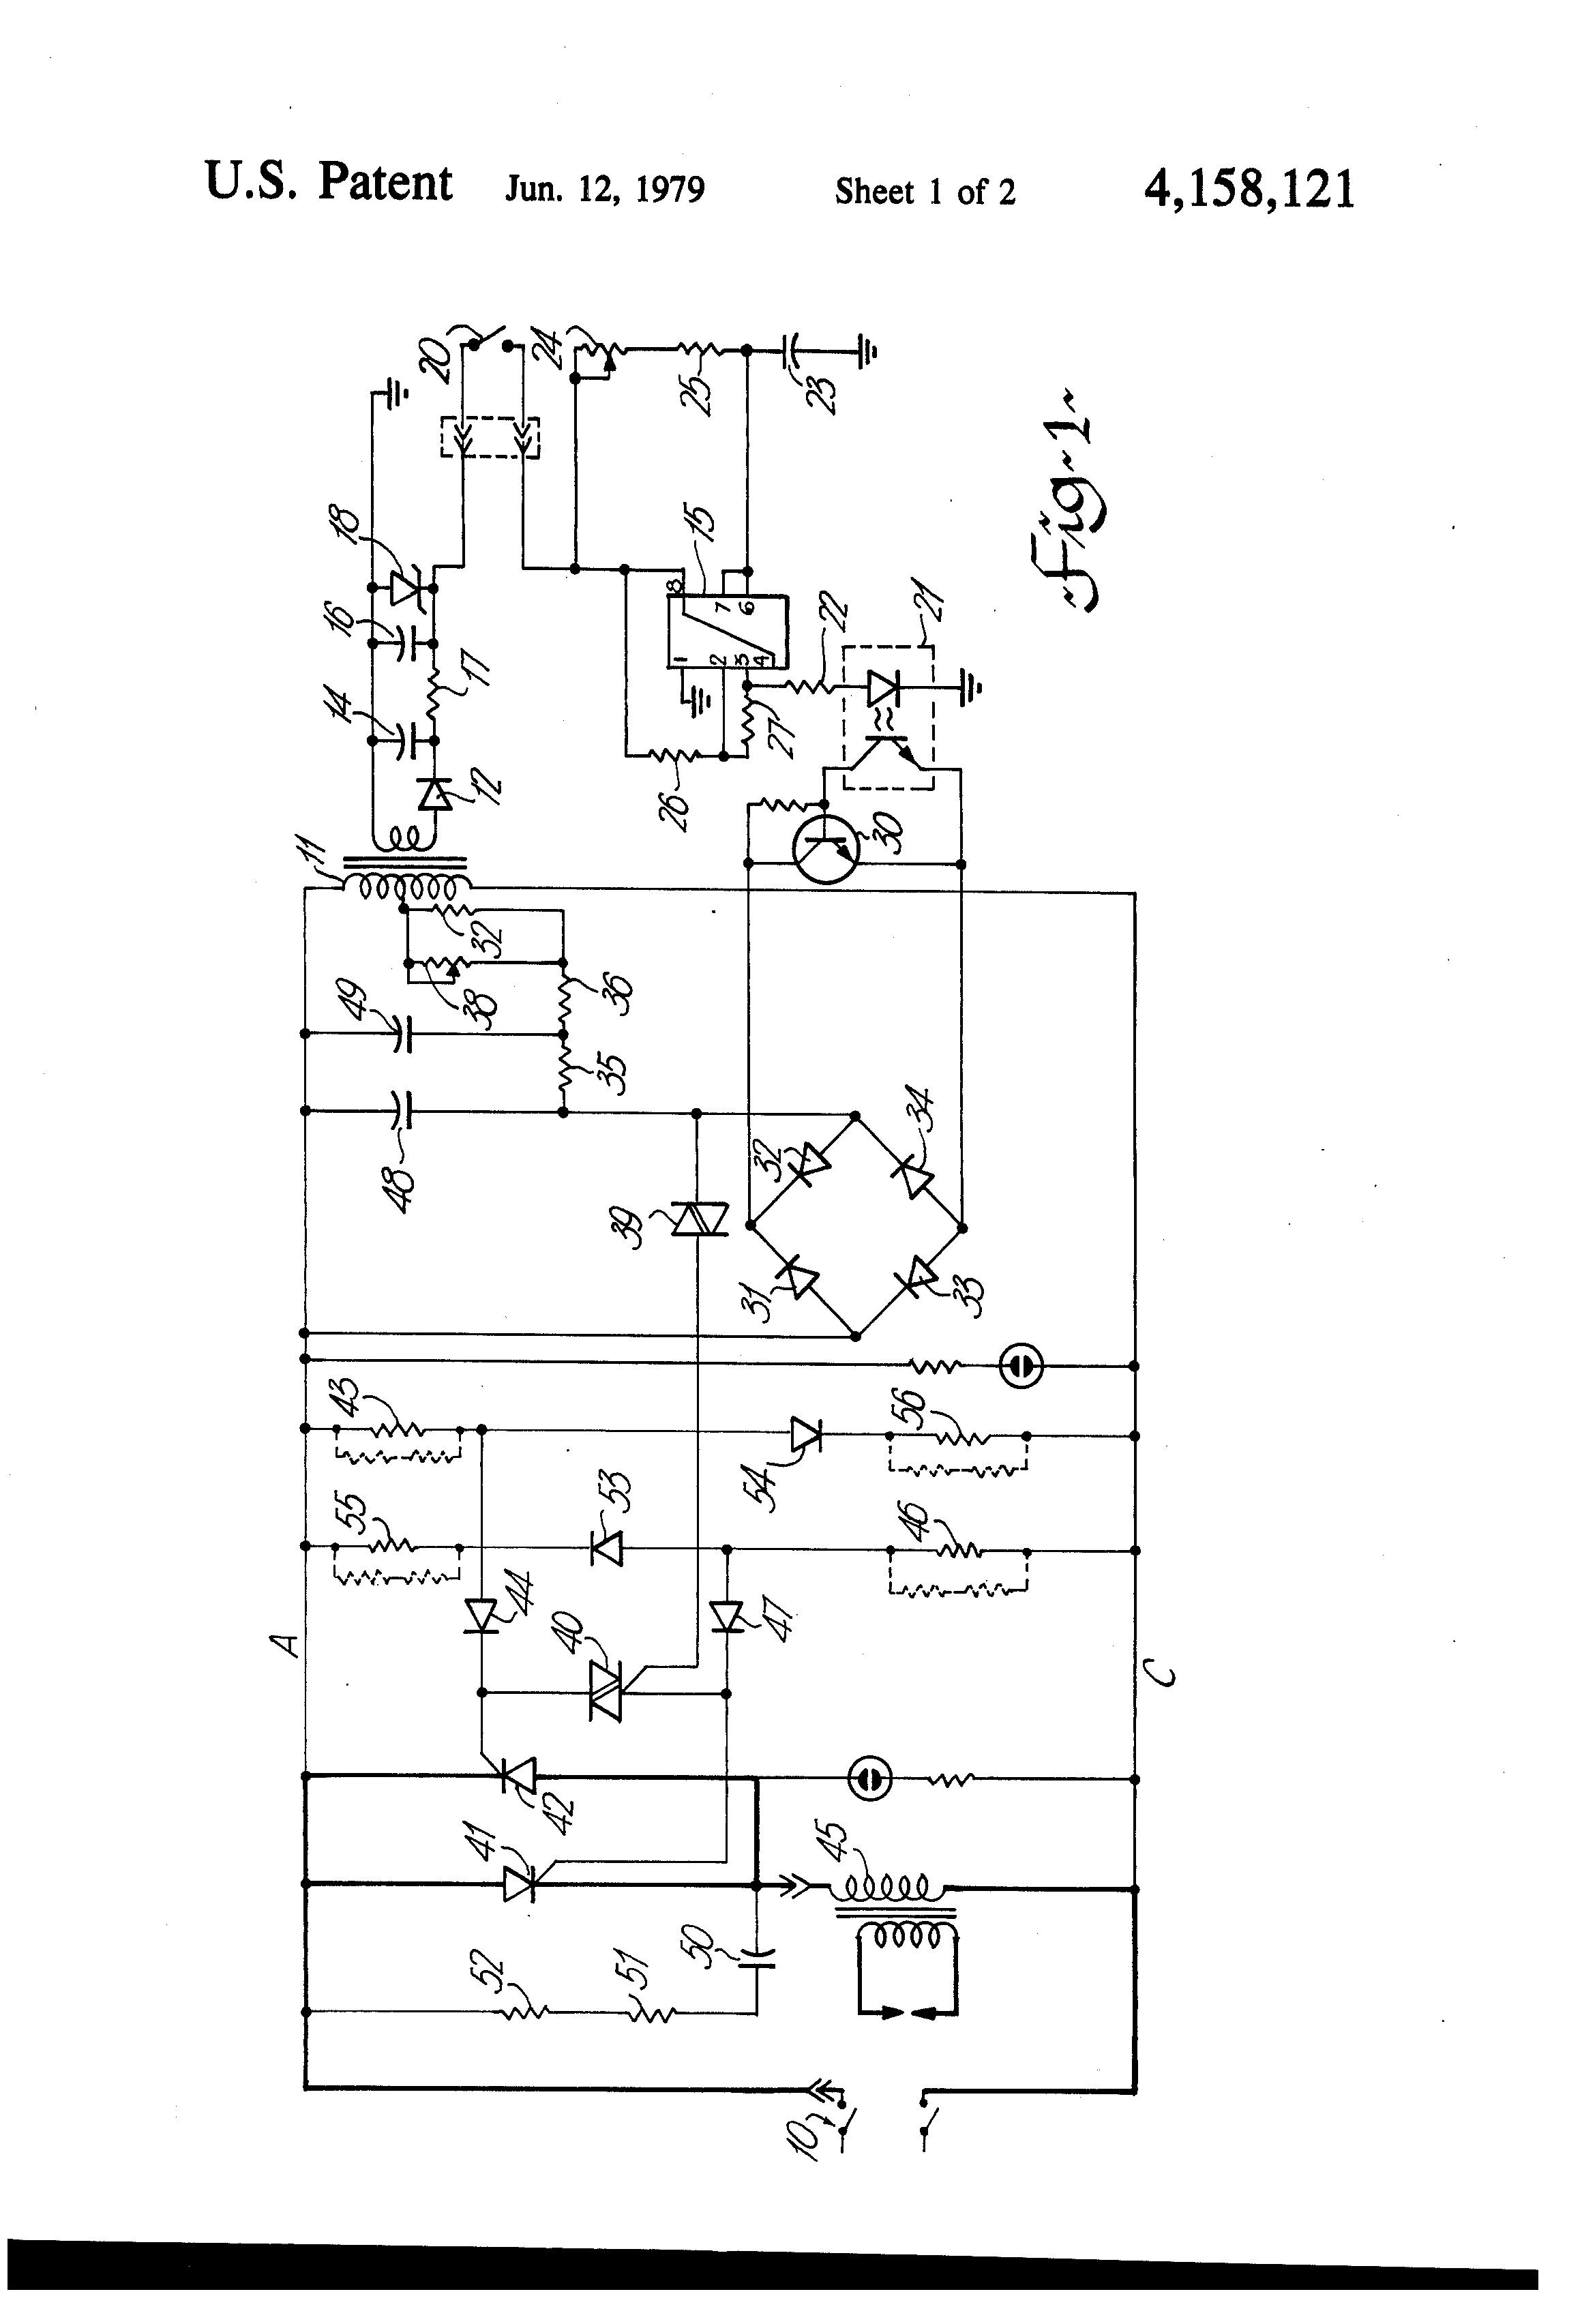 spot welding wiring diagram   27 wiring diagram images